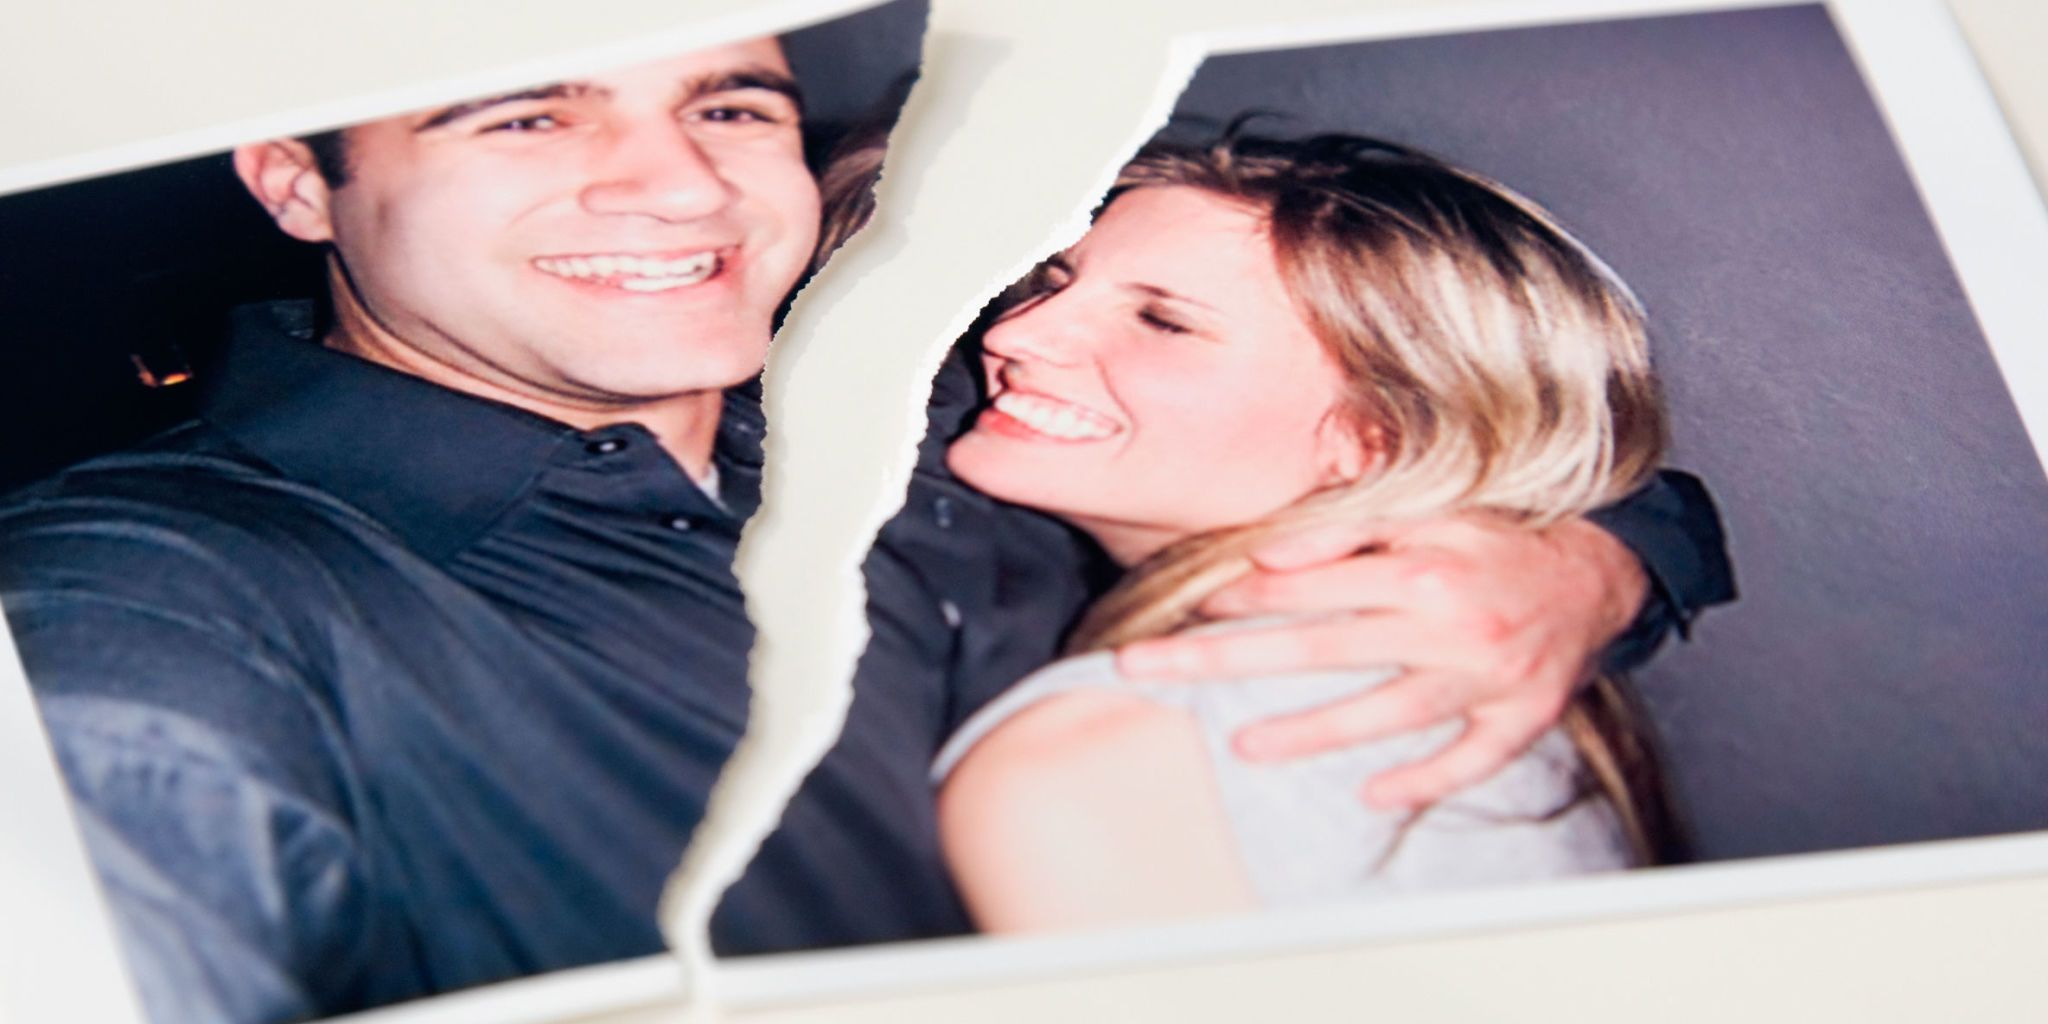 ontario freiberg while single separated sachsen dating  Dating a New Partner, FamilyLLB - Ontario Divorce Family Law Blog.